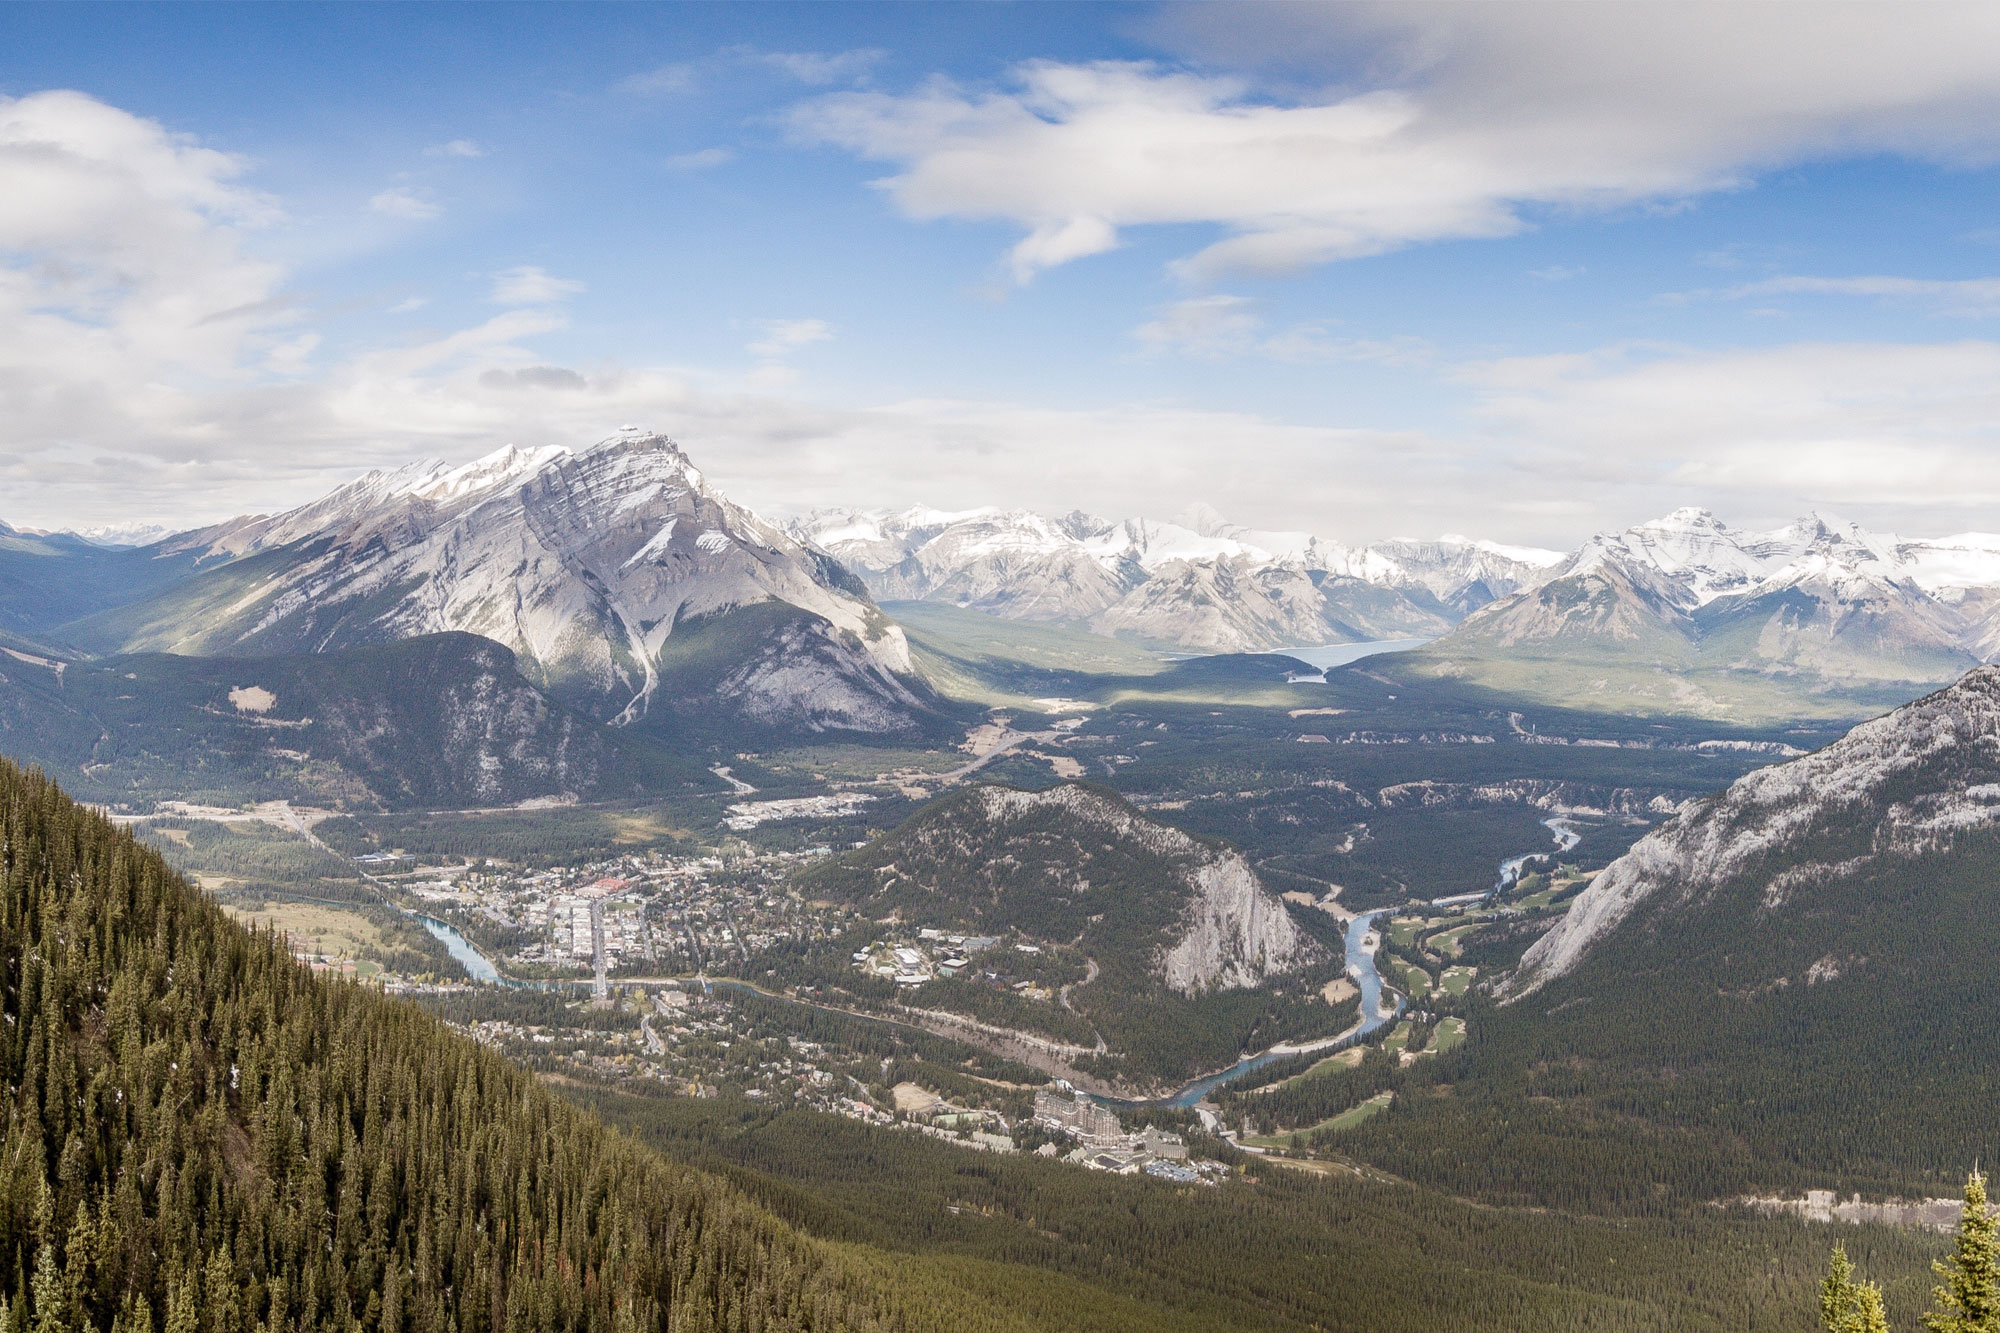 Top-of-Sulphur-Mountain is one of the top things to do in Banff all year round